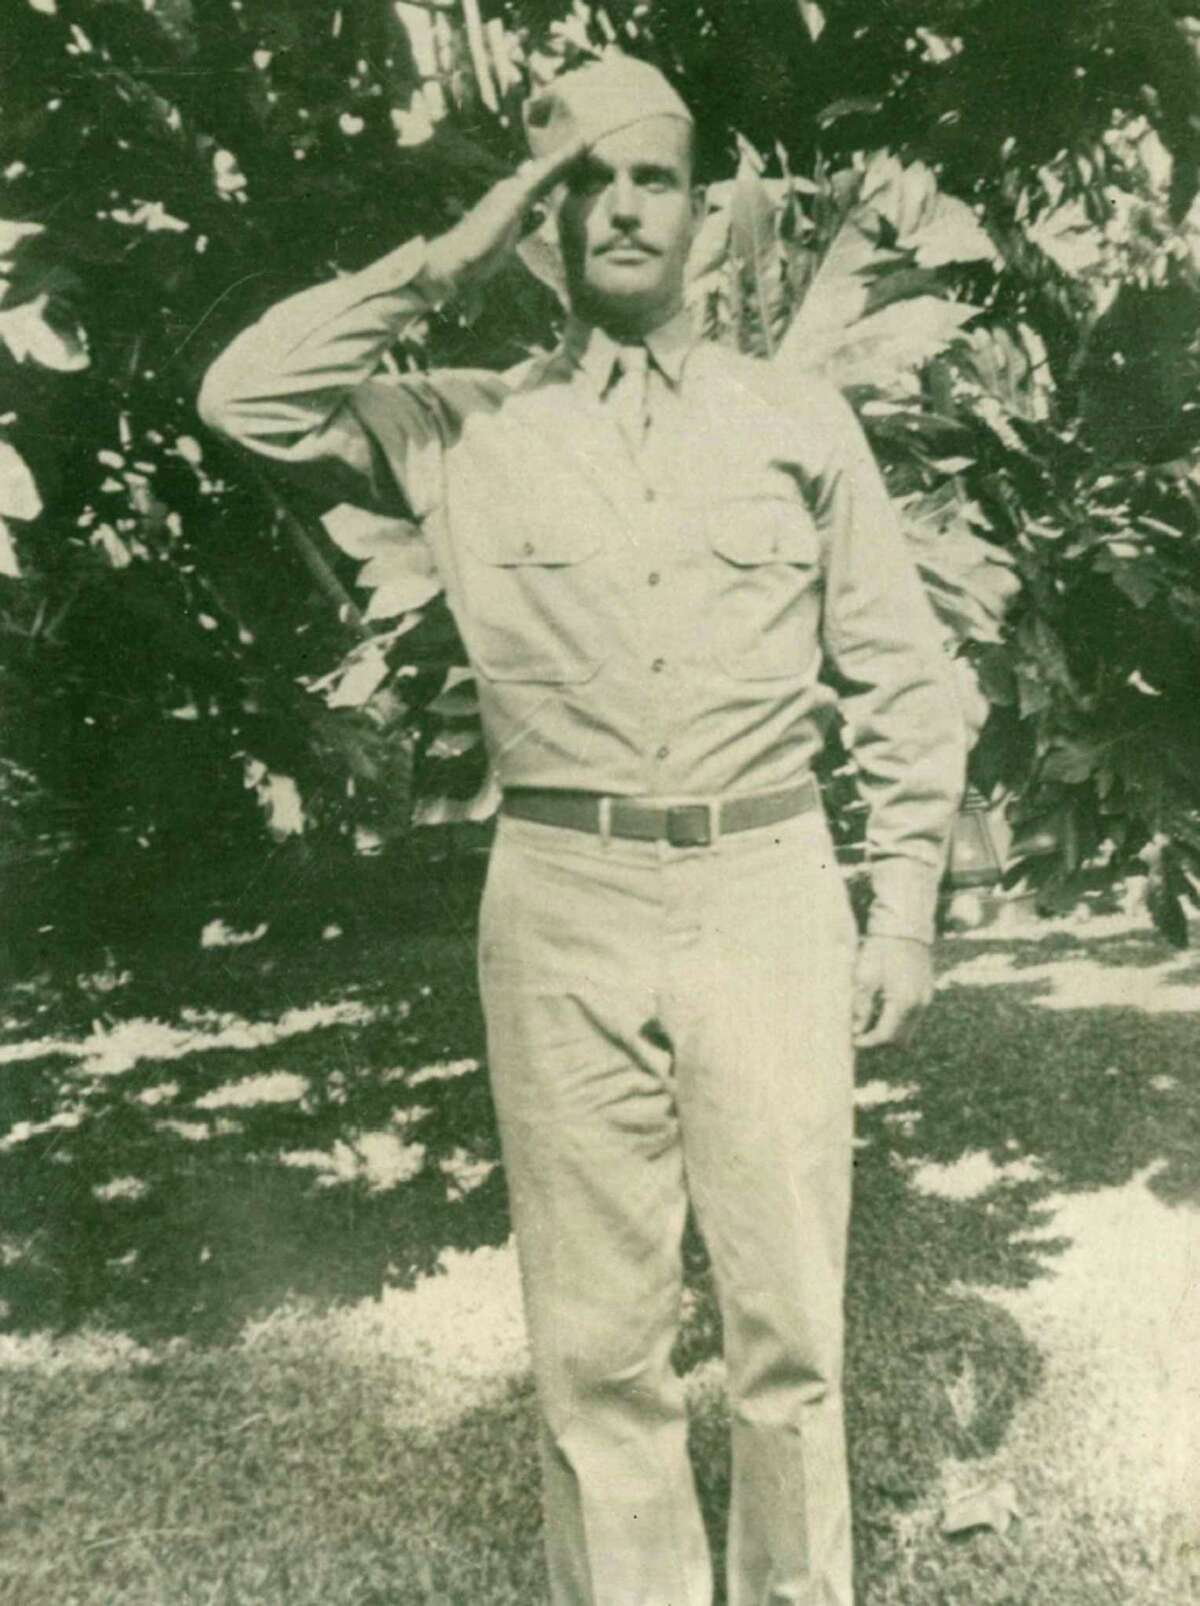 In this 1942 photo provided by Dale Ross shows his uncle, Pfc. Dale W. Ross in Hawaii. He was the third of four brothers who fought in WWII. Assigned to the Army's 25th Infantry Division, he was listed as missing in action in January 1943, during the final weeks of the Guadalcanal campaign. He was last seen in an area that saw heavy fighting around a Japanese-held hilltop. (Courtesy of Dale Ross via AP) ORG XMIT: NYR201